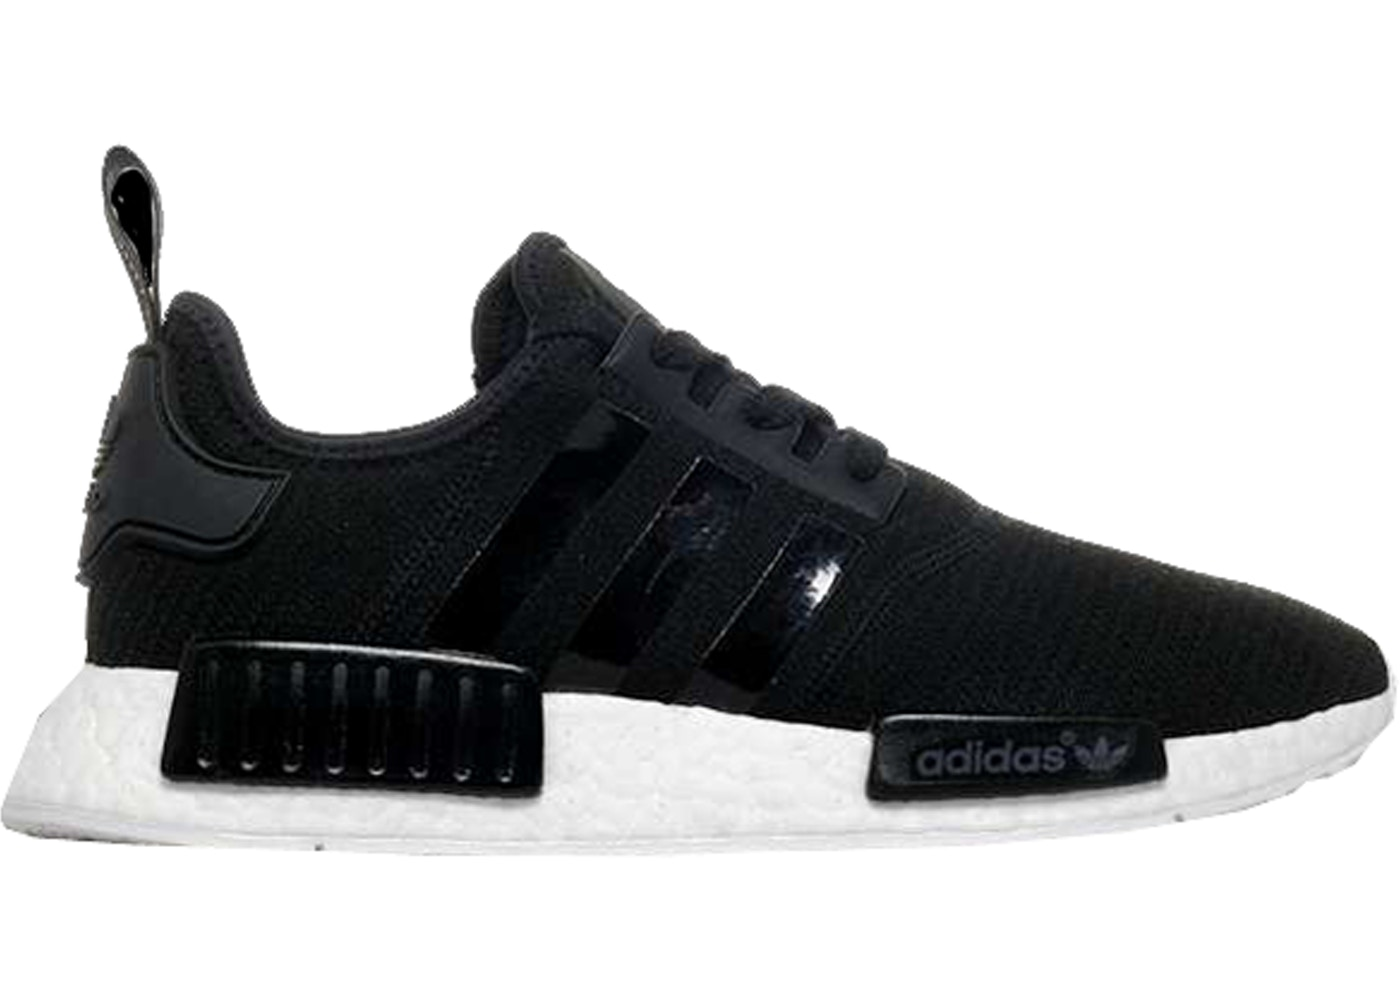 best website b23cc 0046a adidas NMD R1 Core Black White Rose Gold (W)